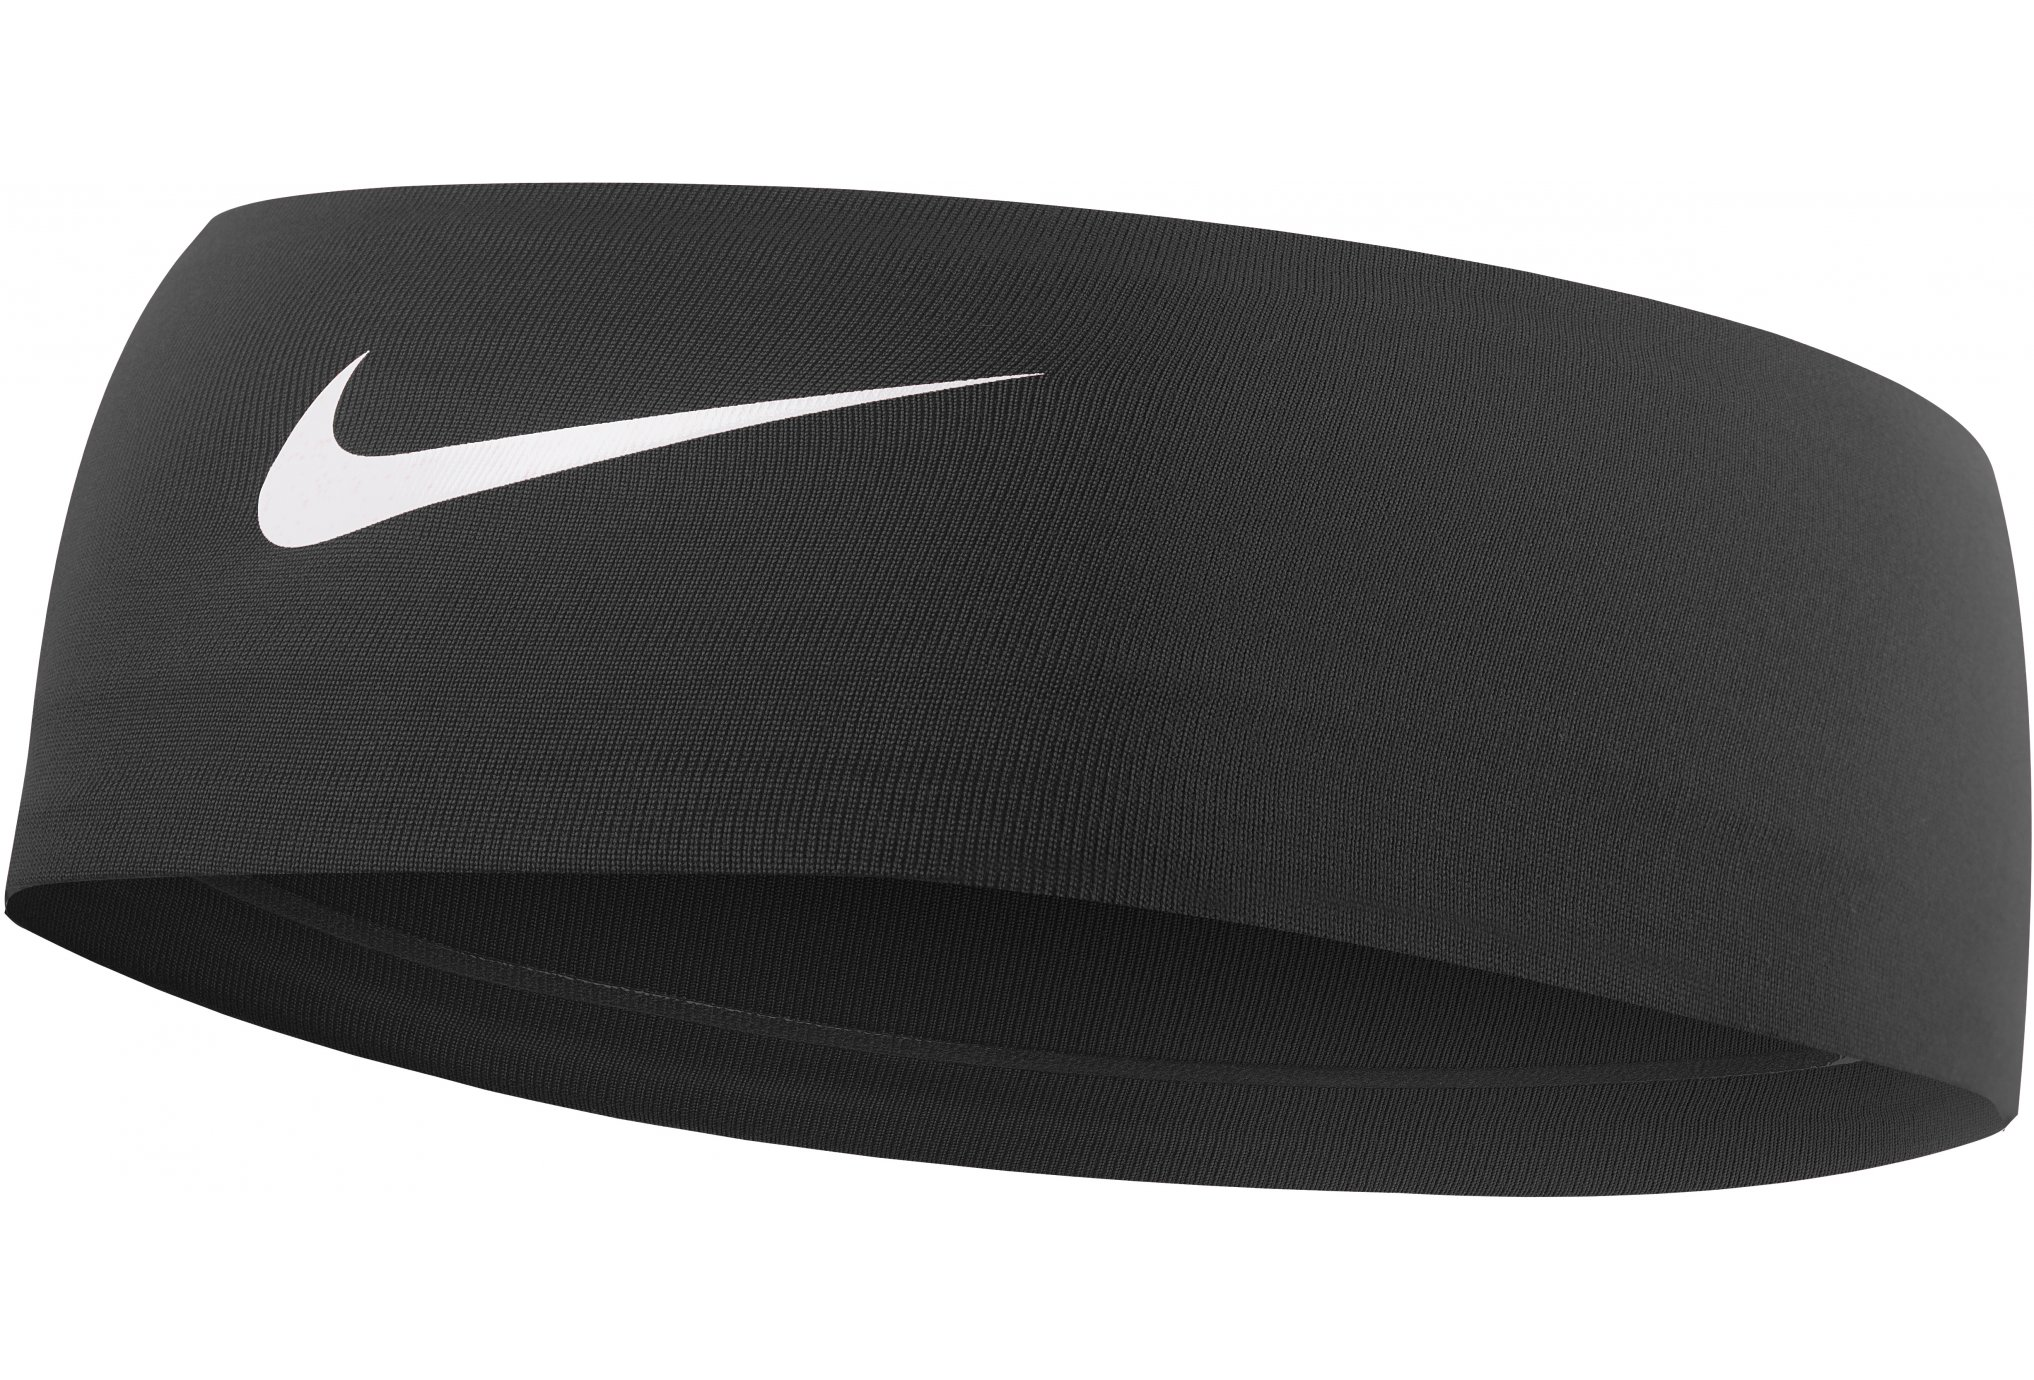 Nike Fury Headband 2.0 Casquettes / bandeaux